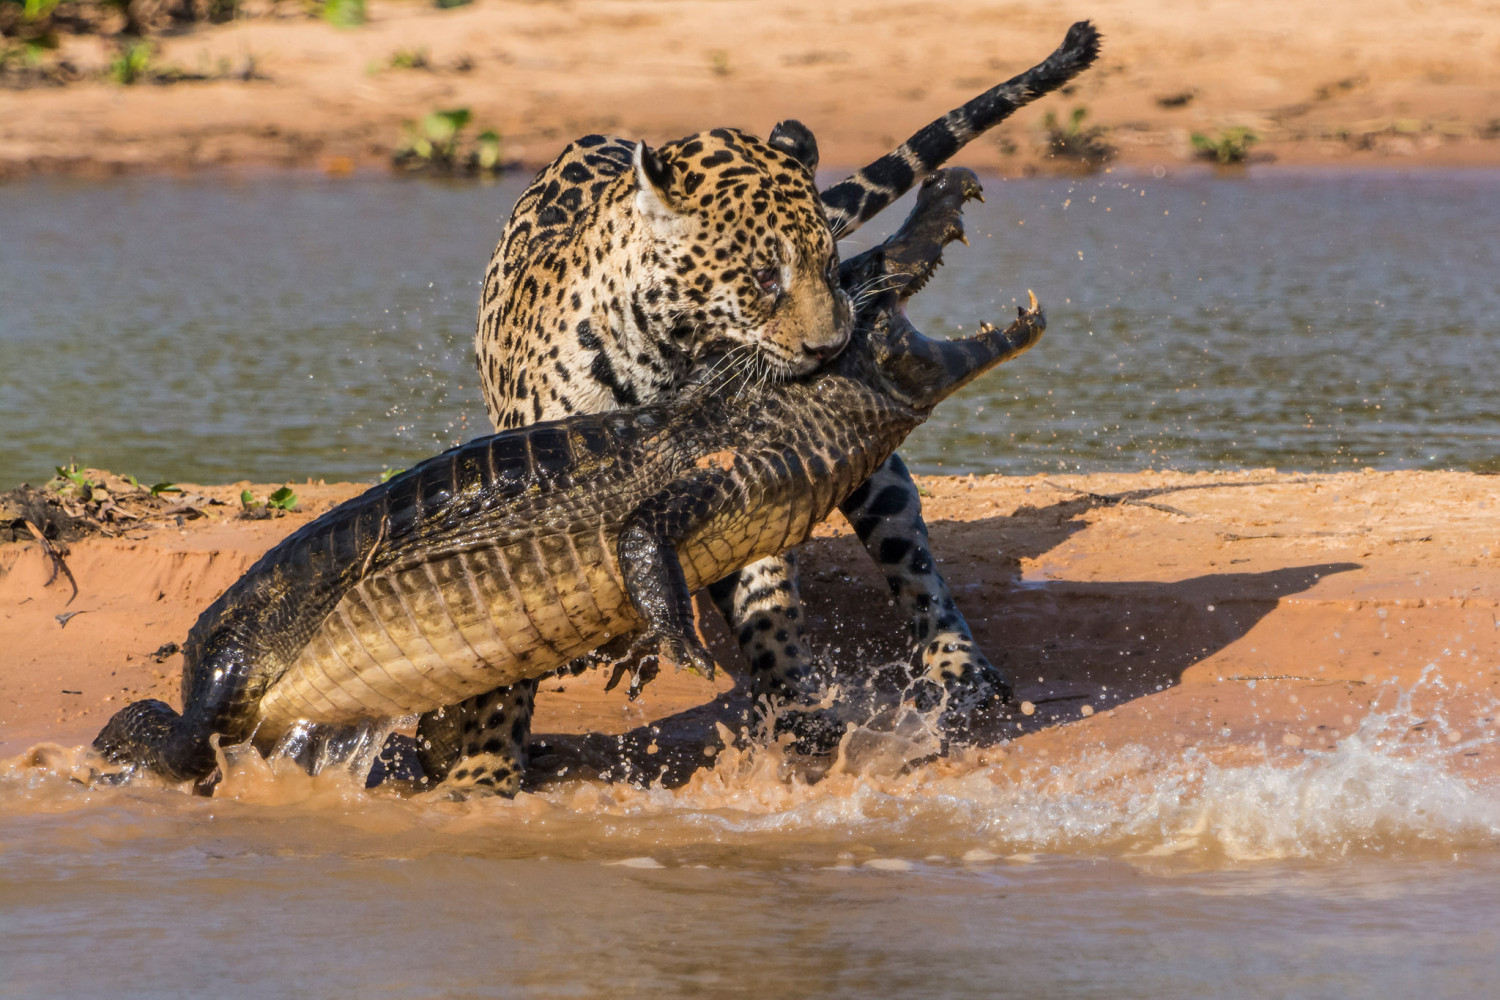 Jaguar Attacks Caiman in This Intense Series of Wildlife Images